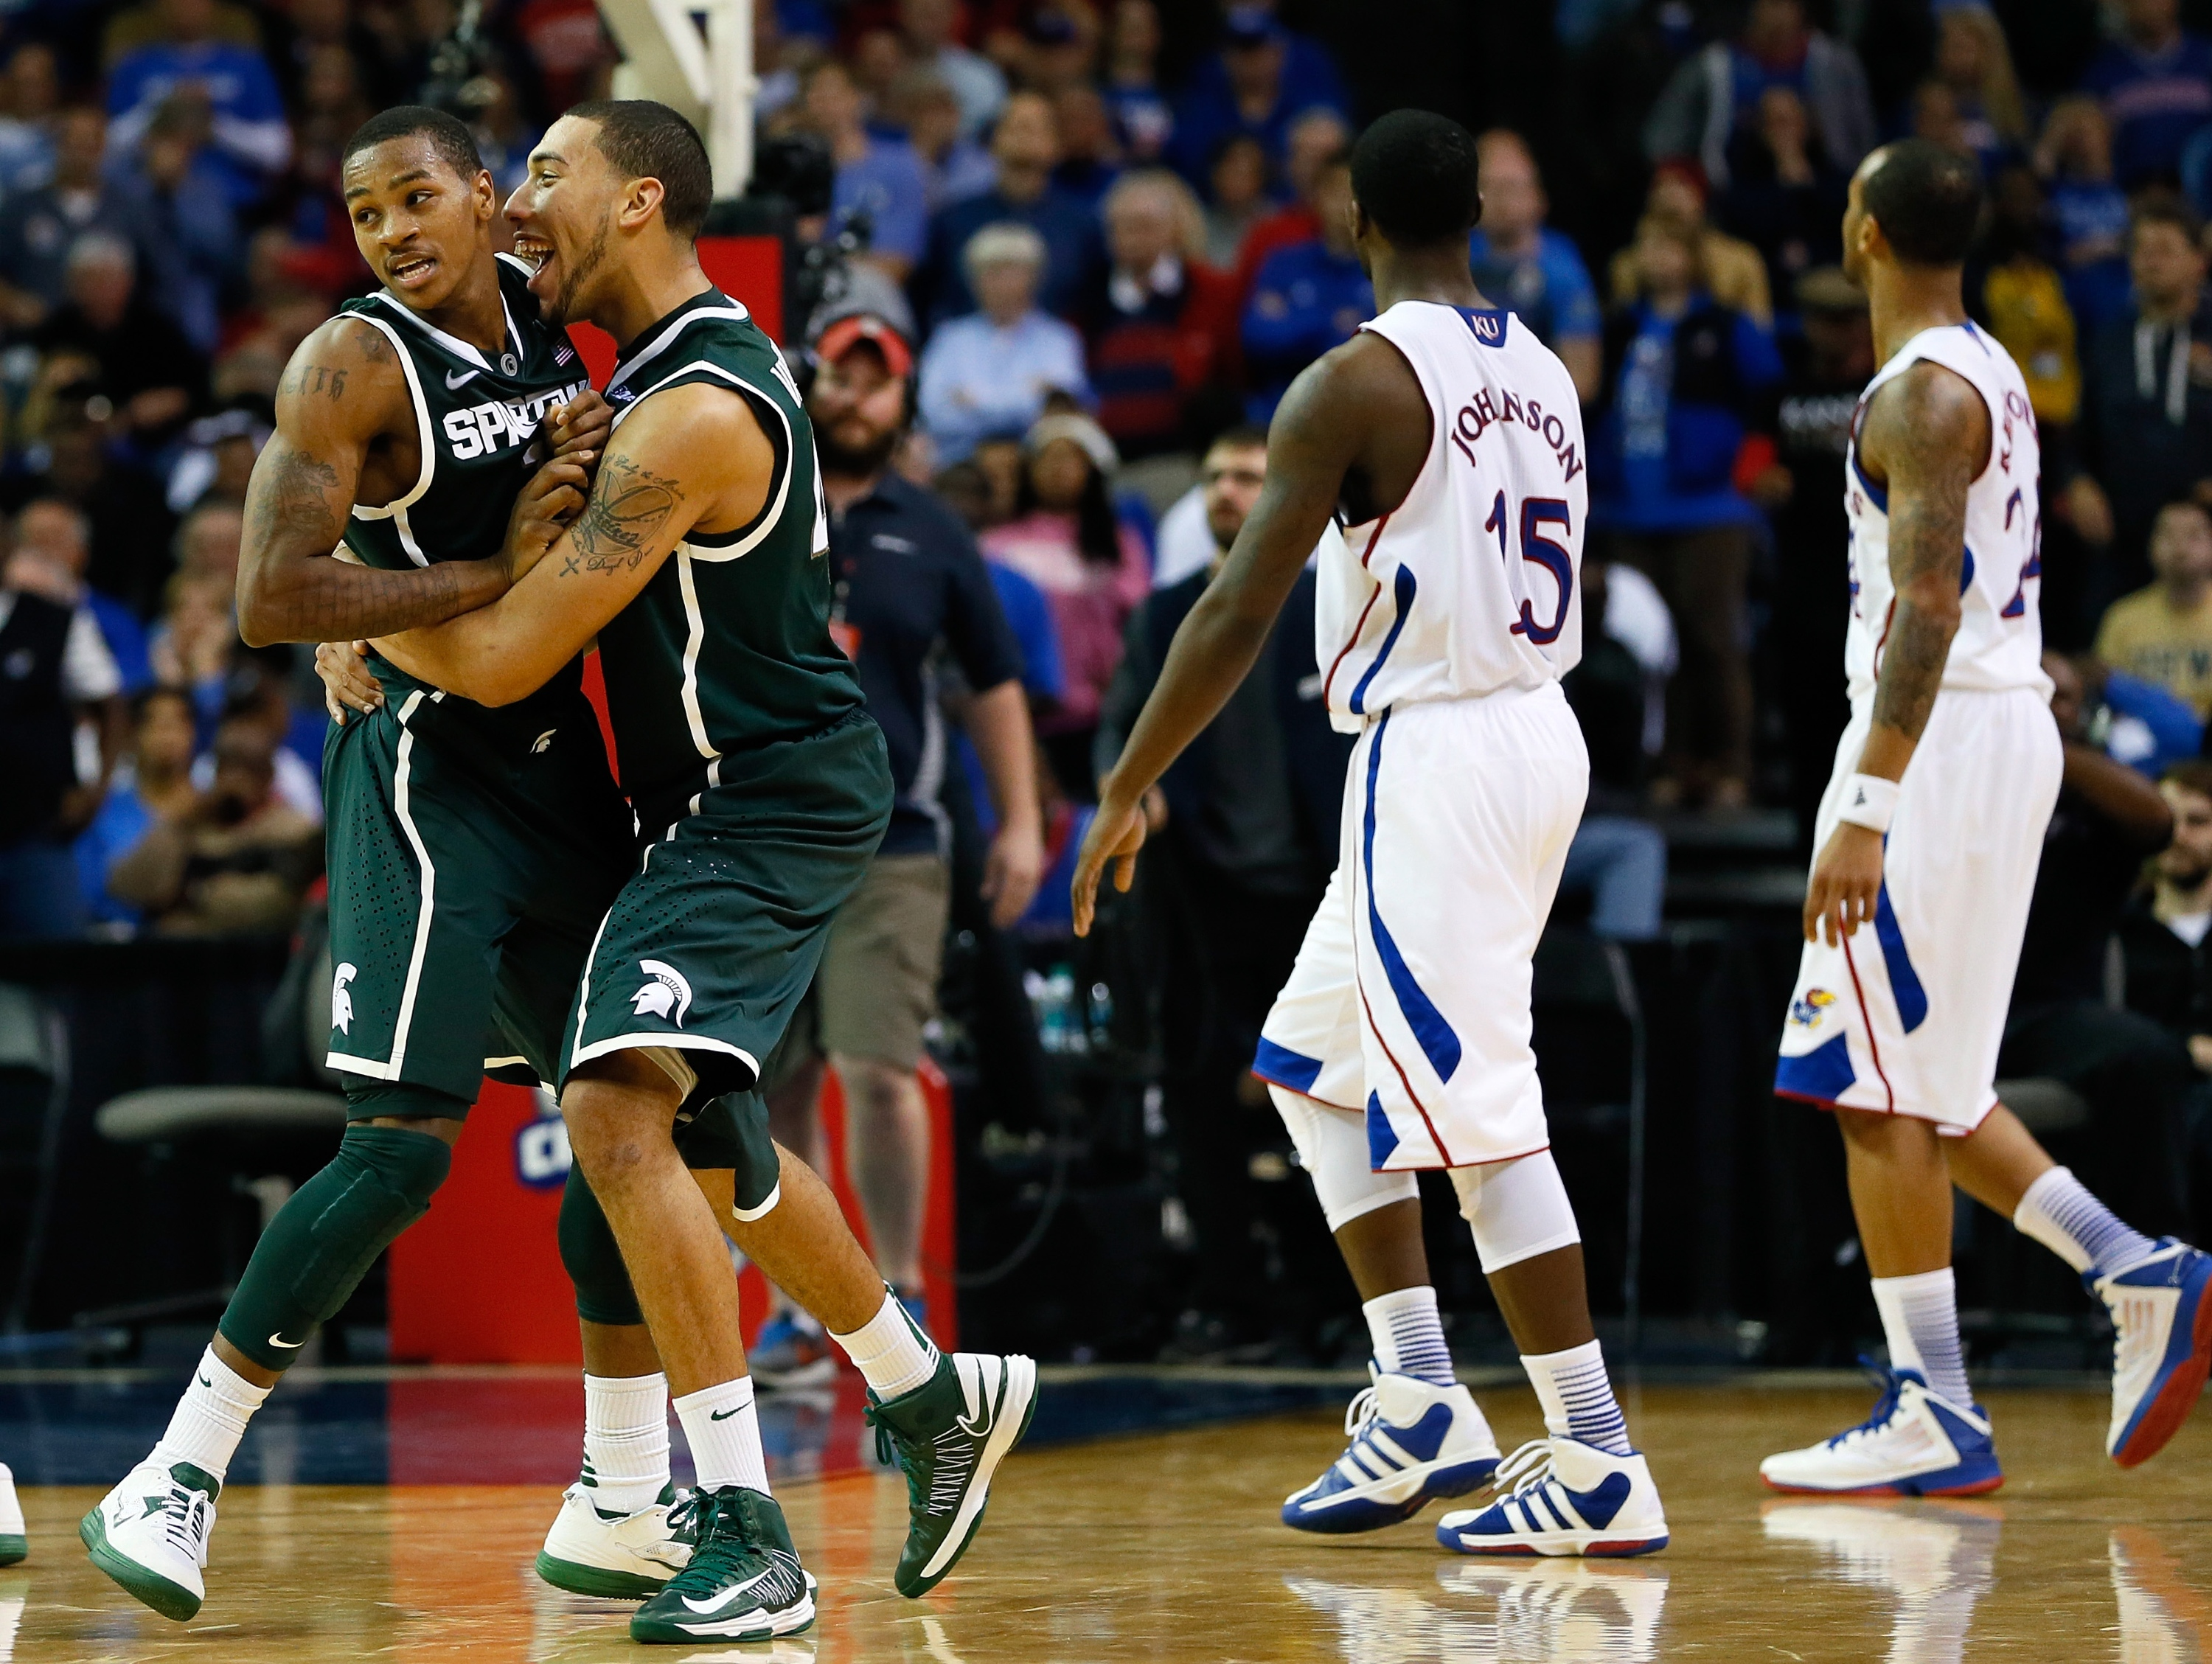 Keith Appling celebrates with Denzel Valentine in MSU's win over Kansas. (Getty)